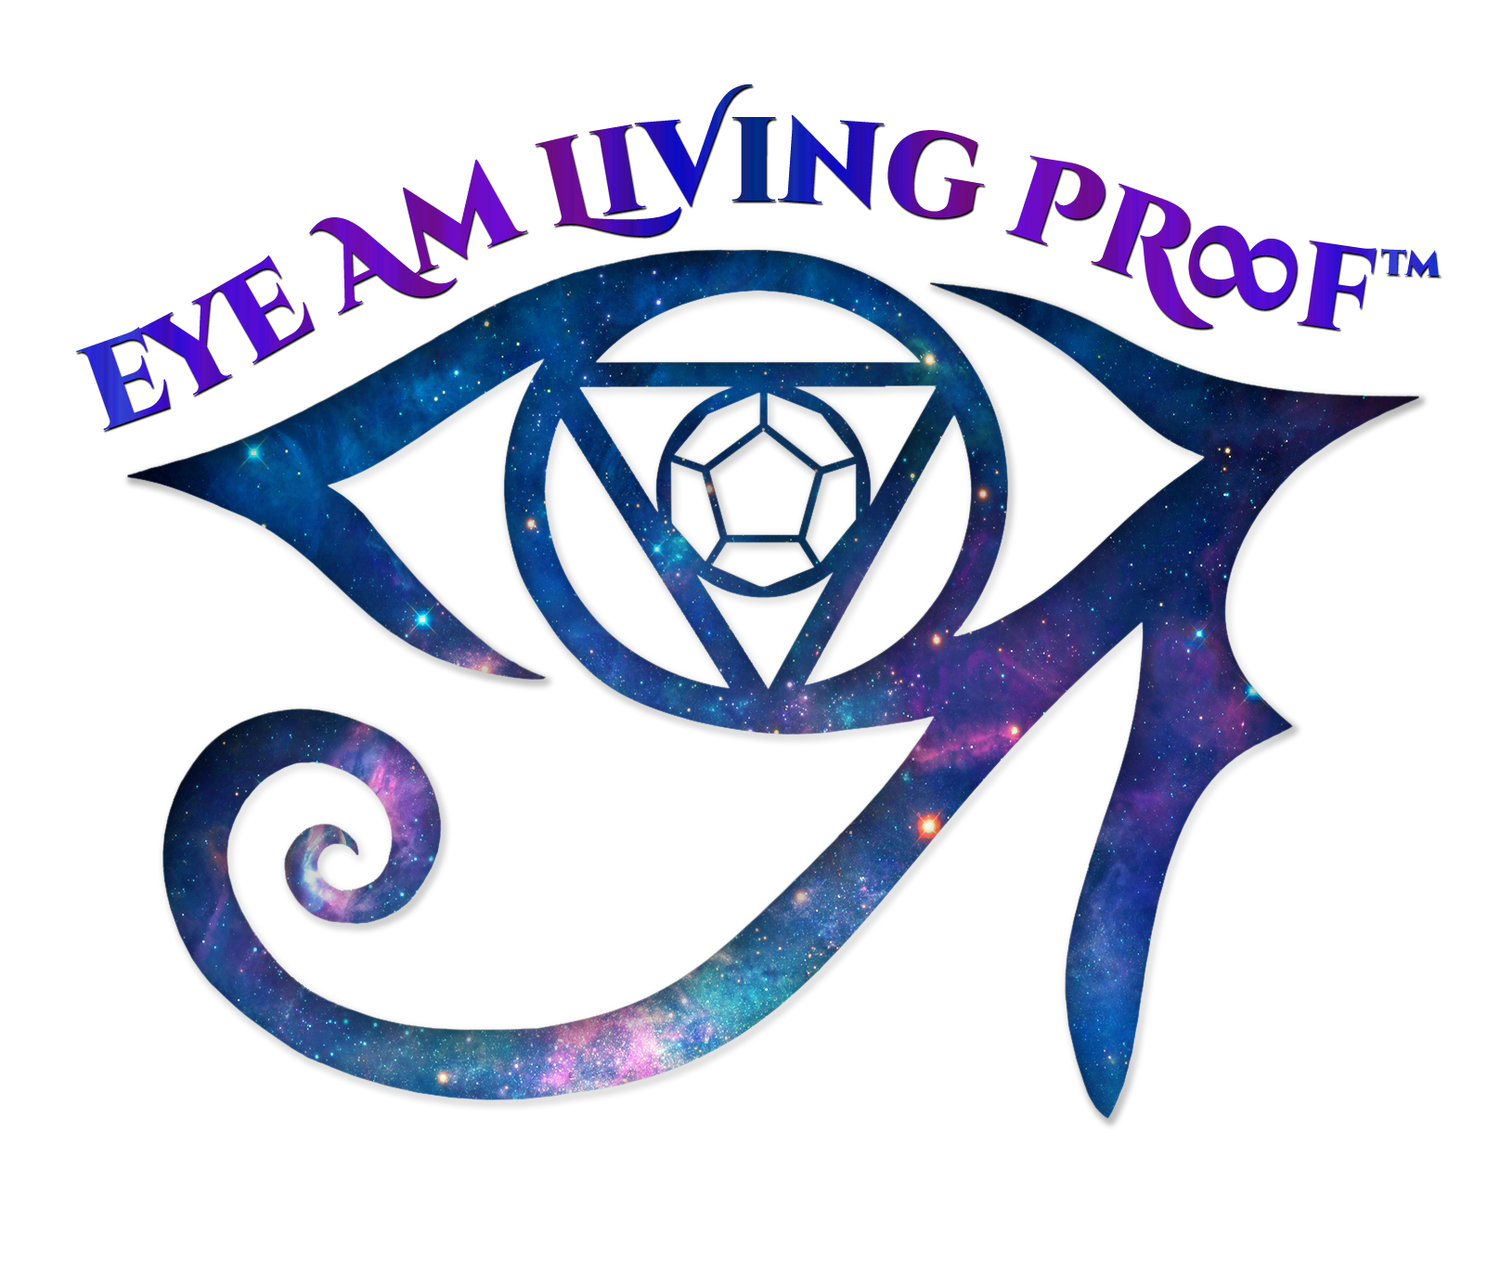 Eye Am Living Pr∞f™